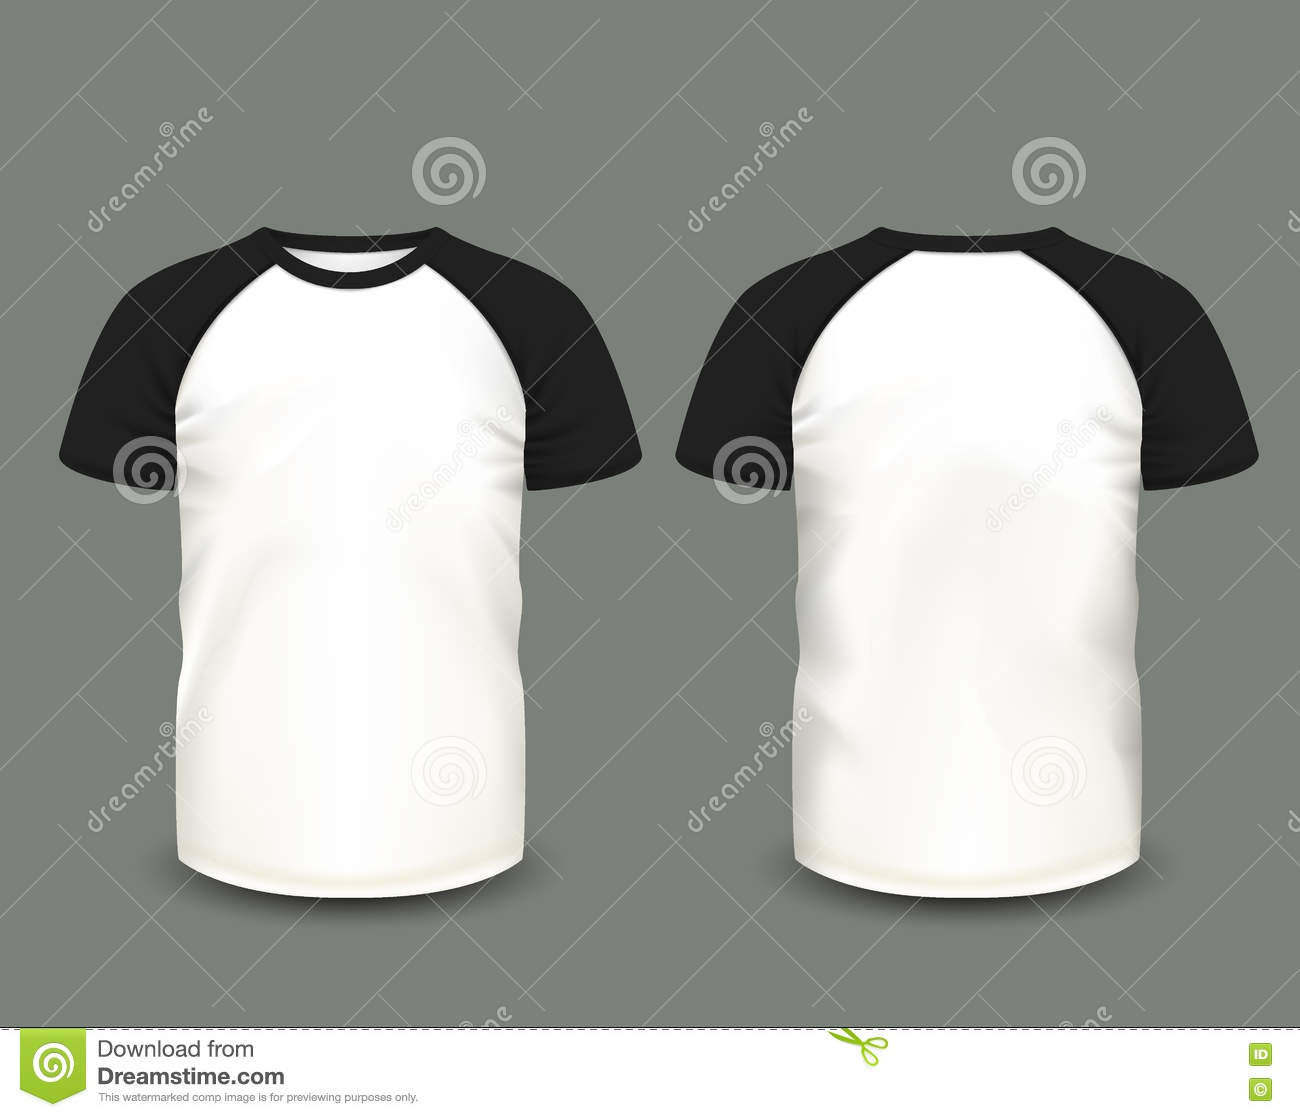 White t shirt front and back template - Men S Raglan T Shirt In Front And Back Views Vector Template Fully Editable